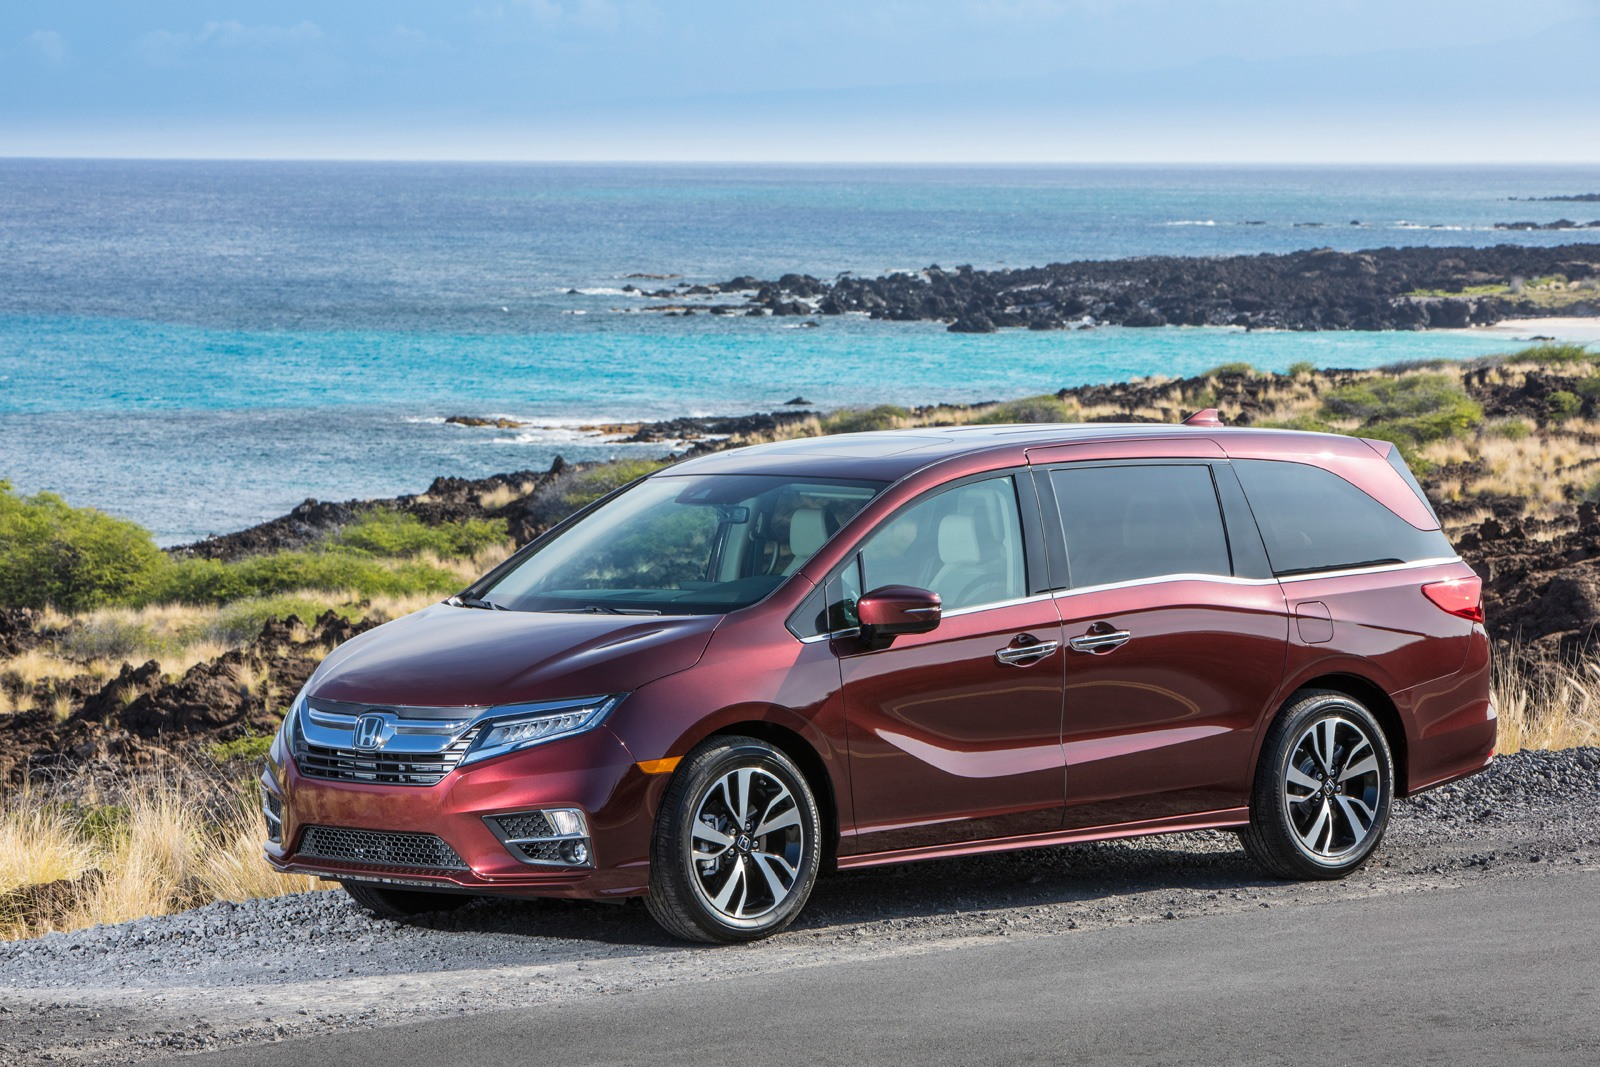 Joining The Pilot Is Honda Odyssey Minivan Which Also Assembled In Lincoln Alabama Was Present On List Last Year